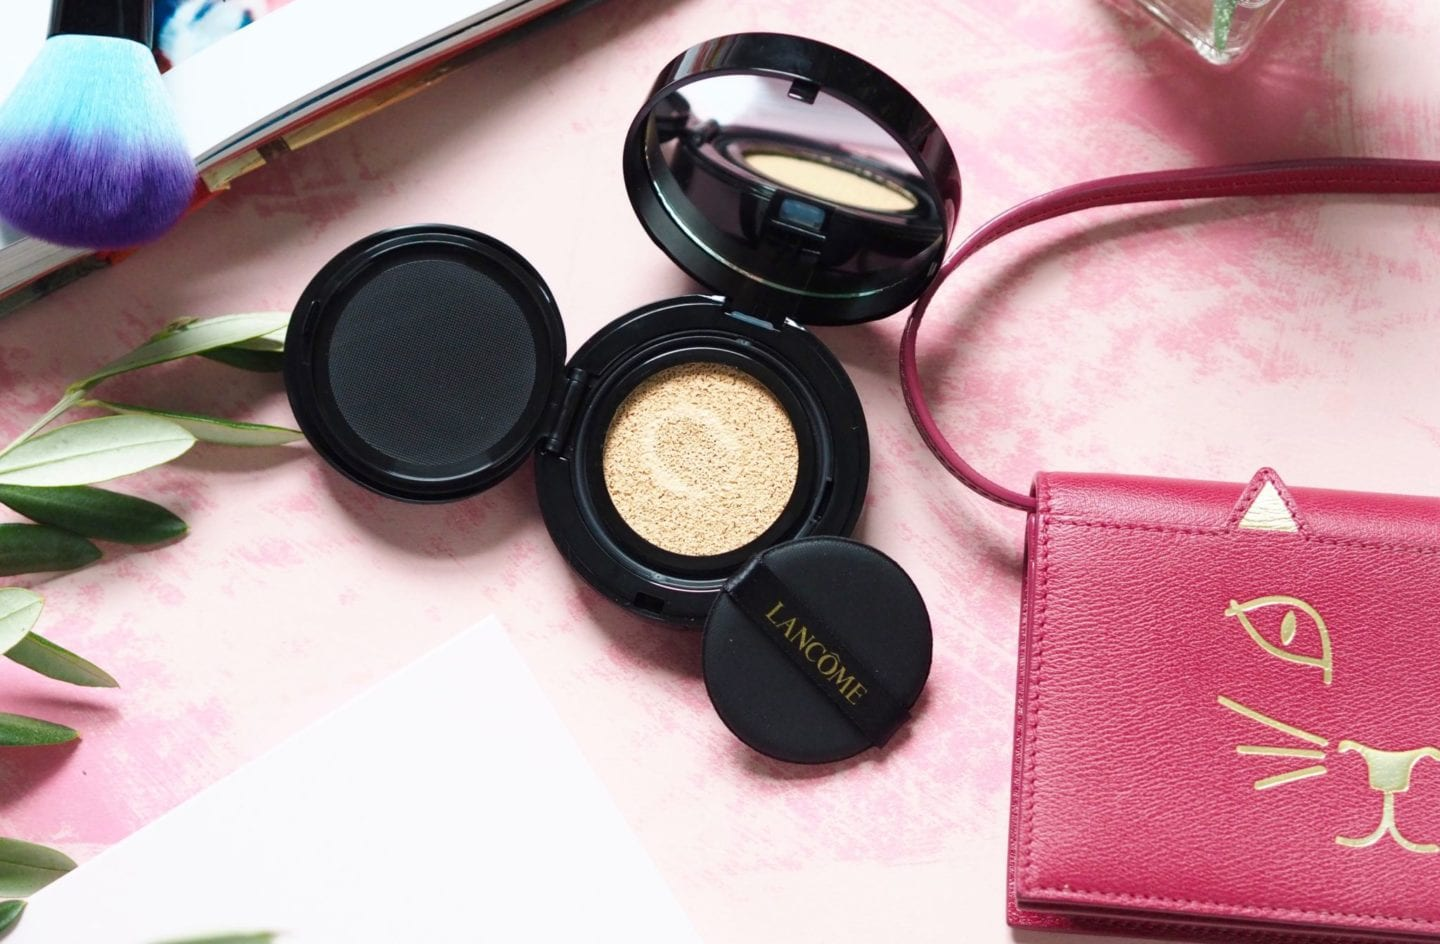 Lancôme X Olympia Le-Tan cushion highlighter